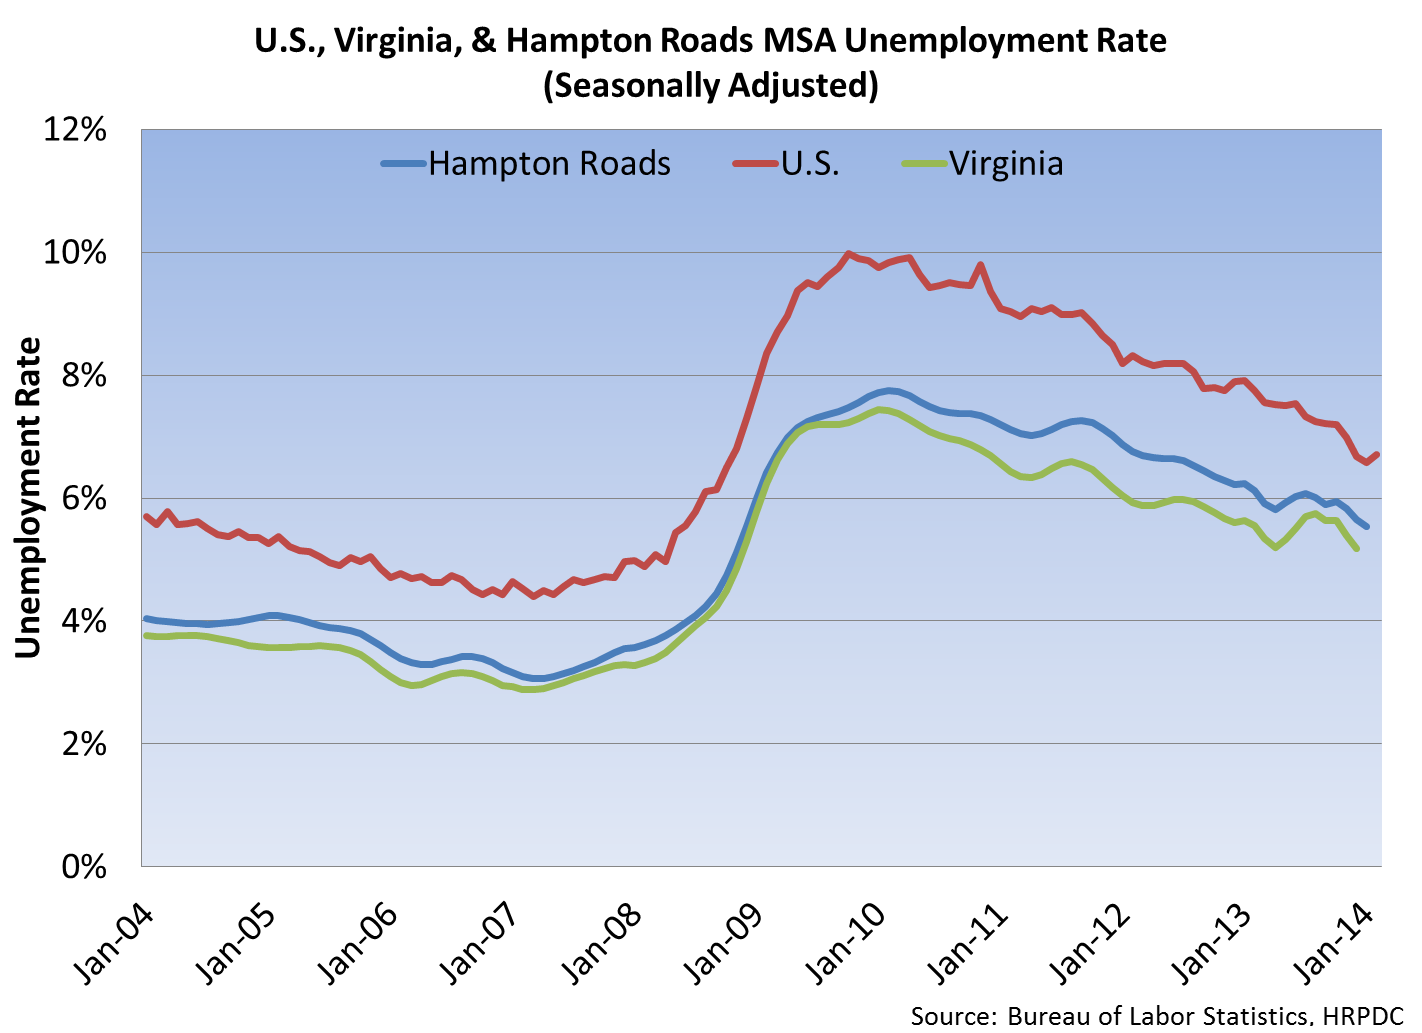 U.S., VA & HRMSA Unemployment Rate (Seasonally Adjusted)